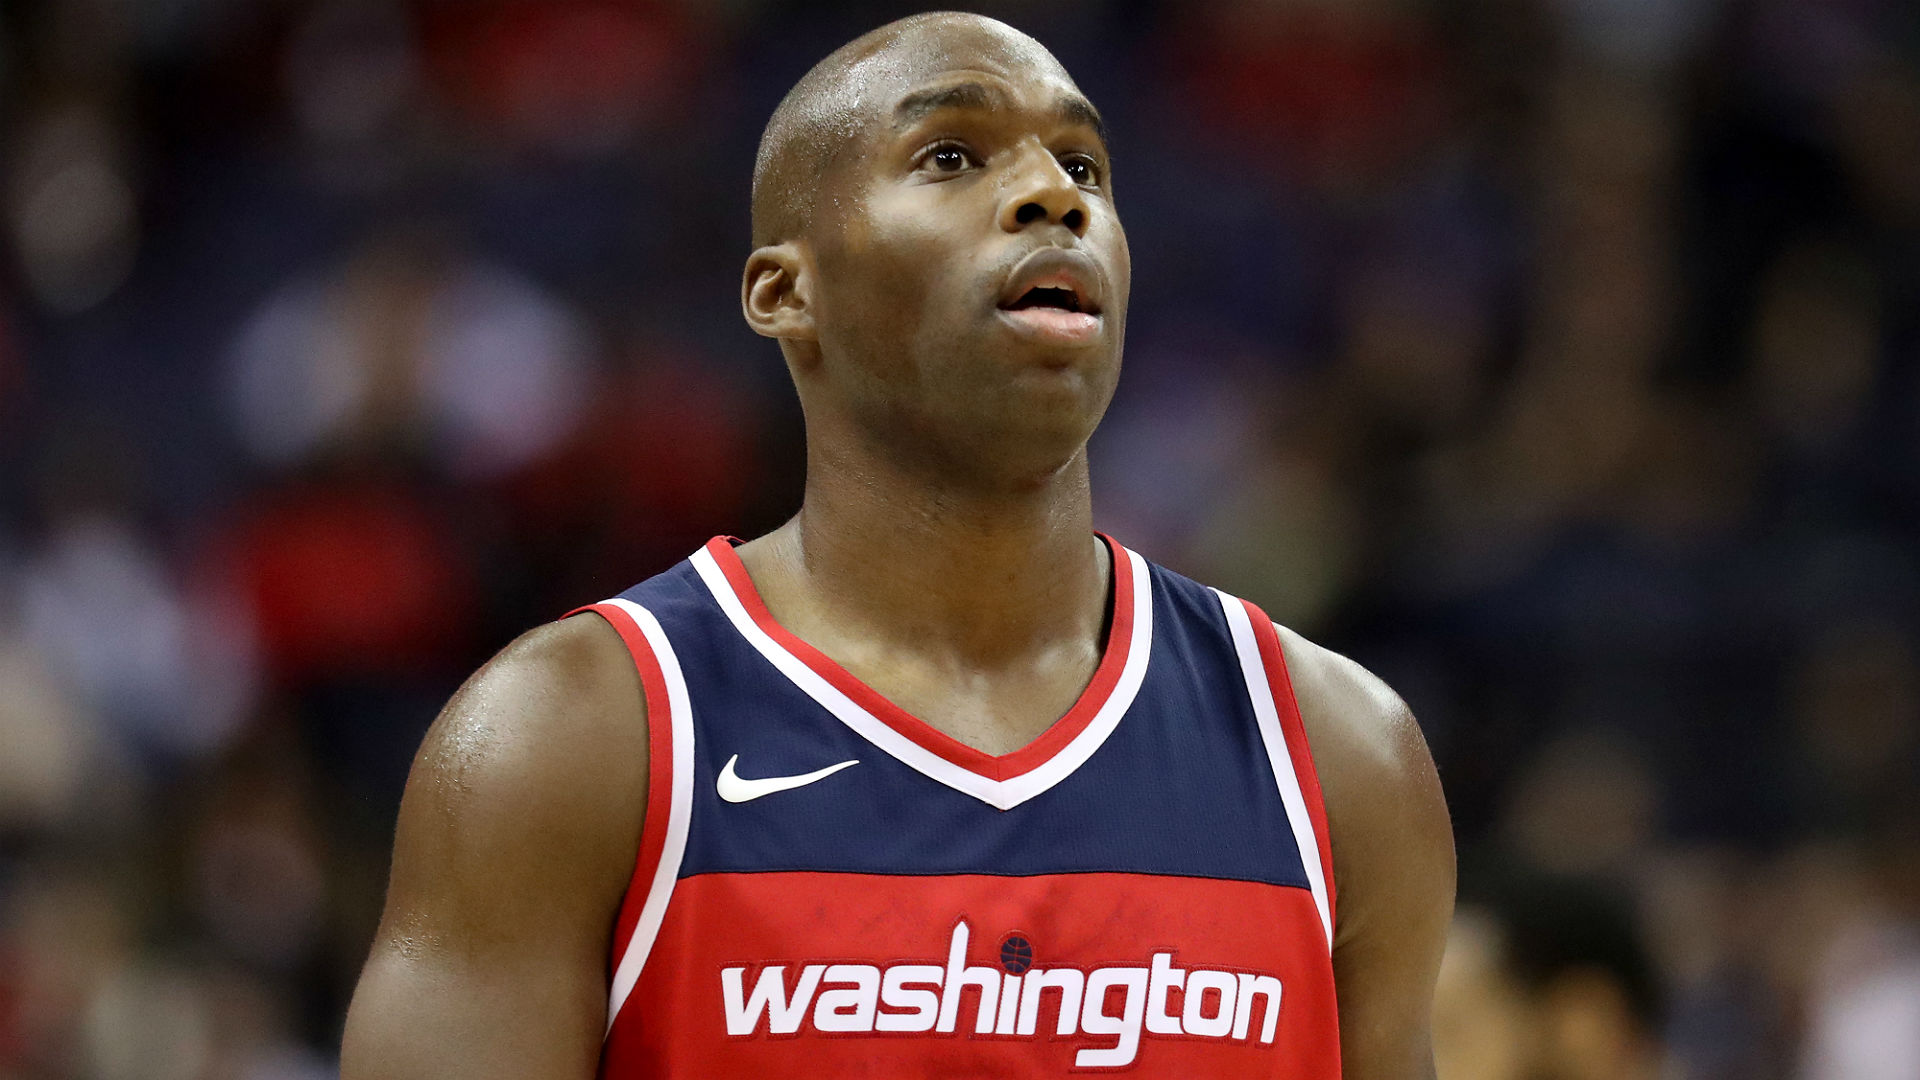 NBA free agency rumors: 76ers to meet with veteran guard Jodie Meeks, 3 others